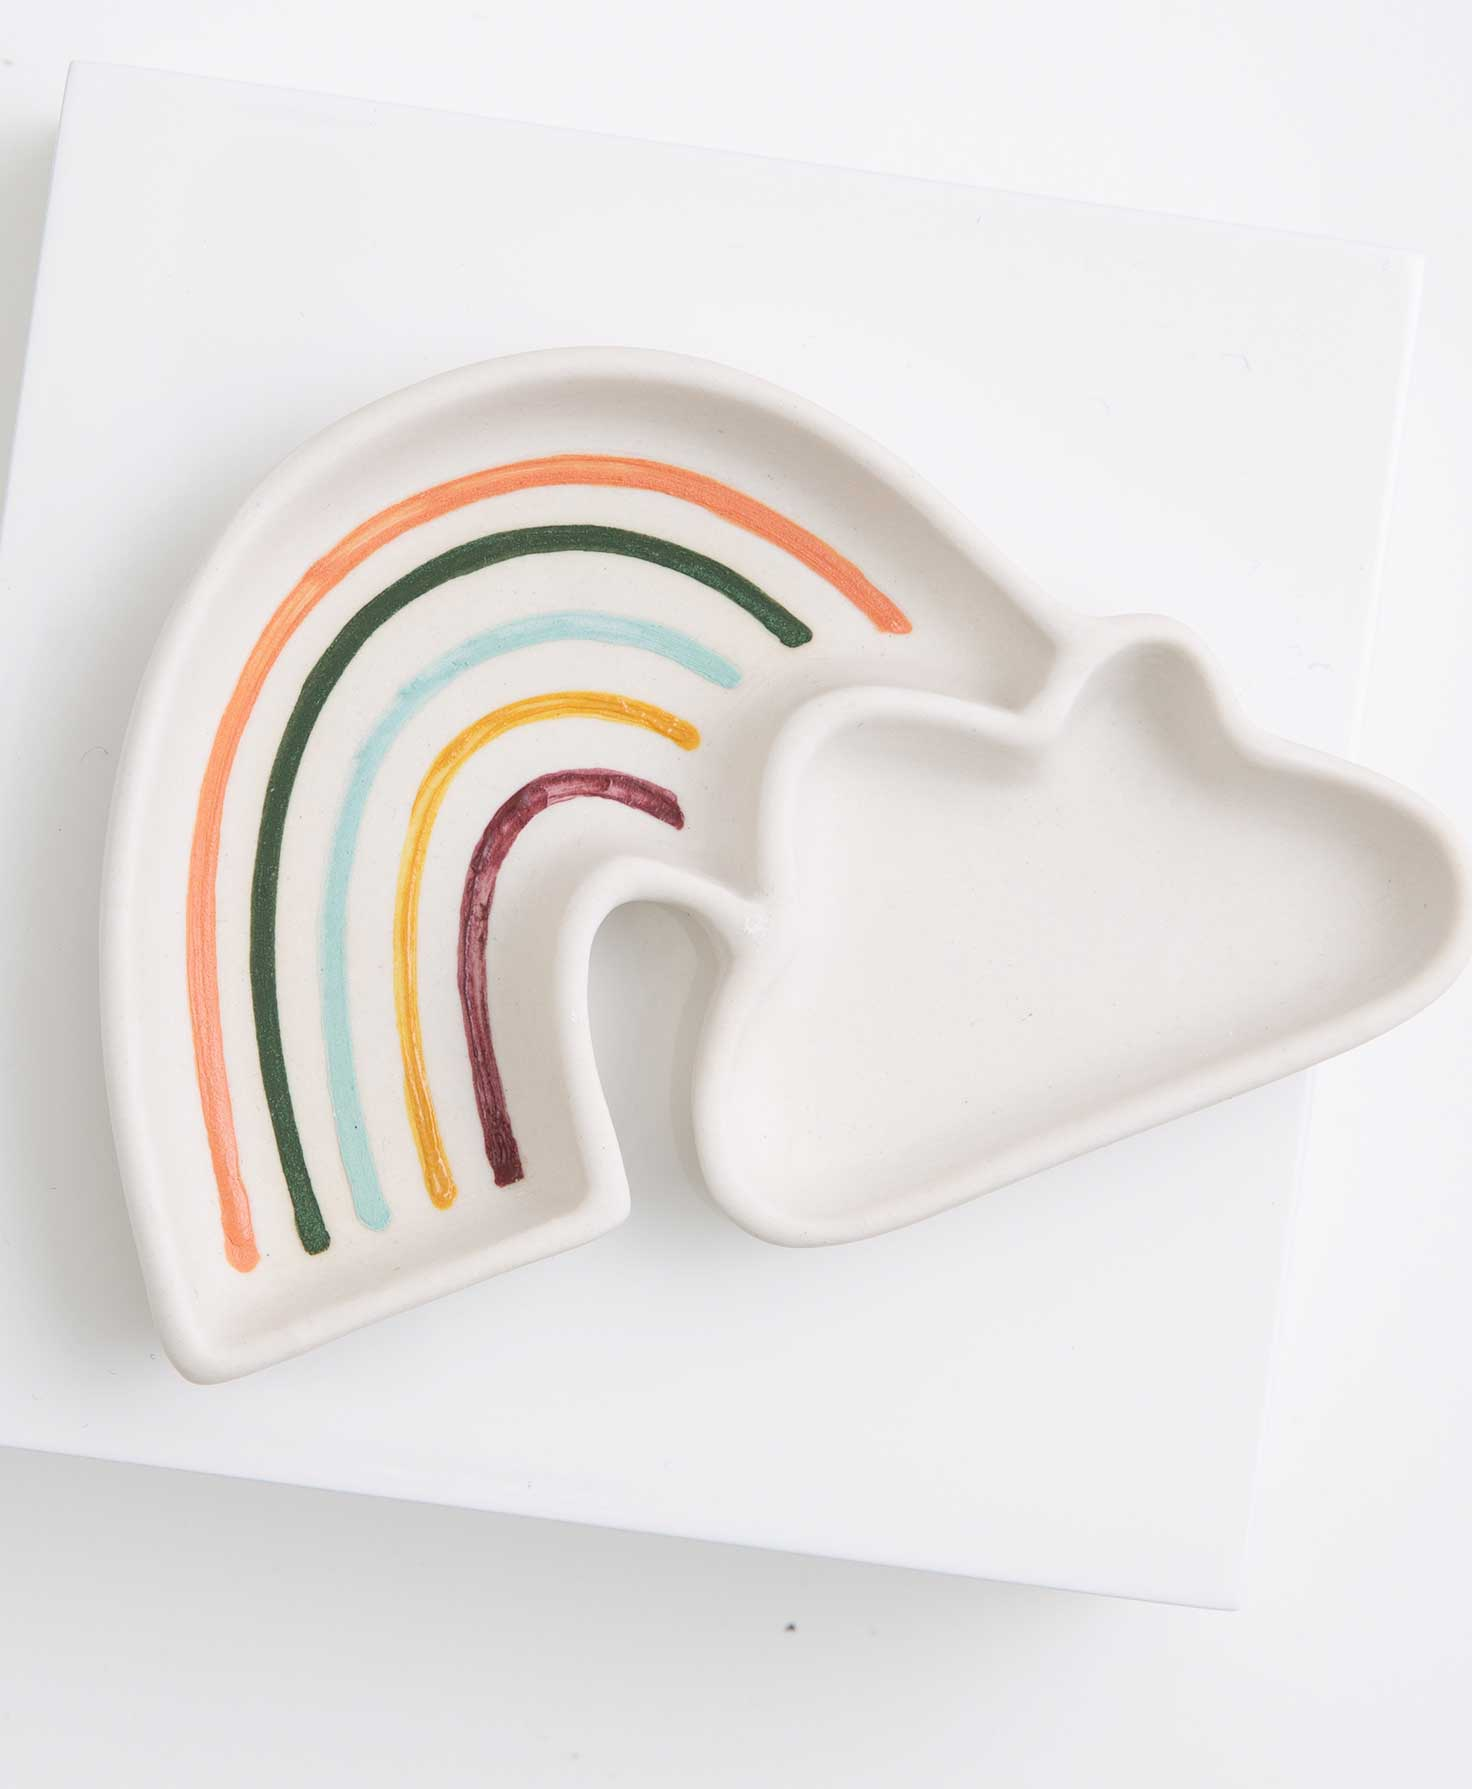 The Rainbow Trinket Tray rests on a white background. It is a flat, white ceramic tray. It is shaped like a rainbow with a cloud on one end. The rainbow and the cloud form two distinct compartments of the tray. There is a raised lip around the entire tray to keep items inside. Inside the rainbow section of the tray there are colorful stripes in shades of orange, forest green, sky blue, yellow, and pink to represent the colors of the rainbow. The inside of the cloud section has no markings.